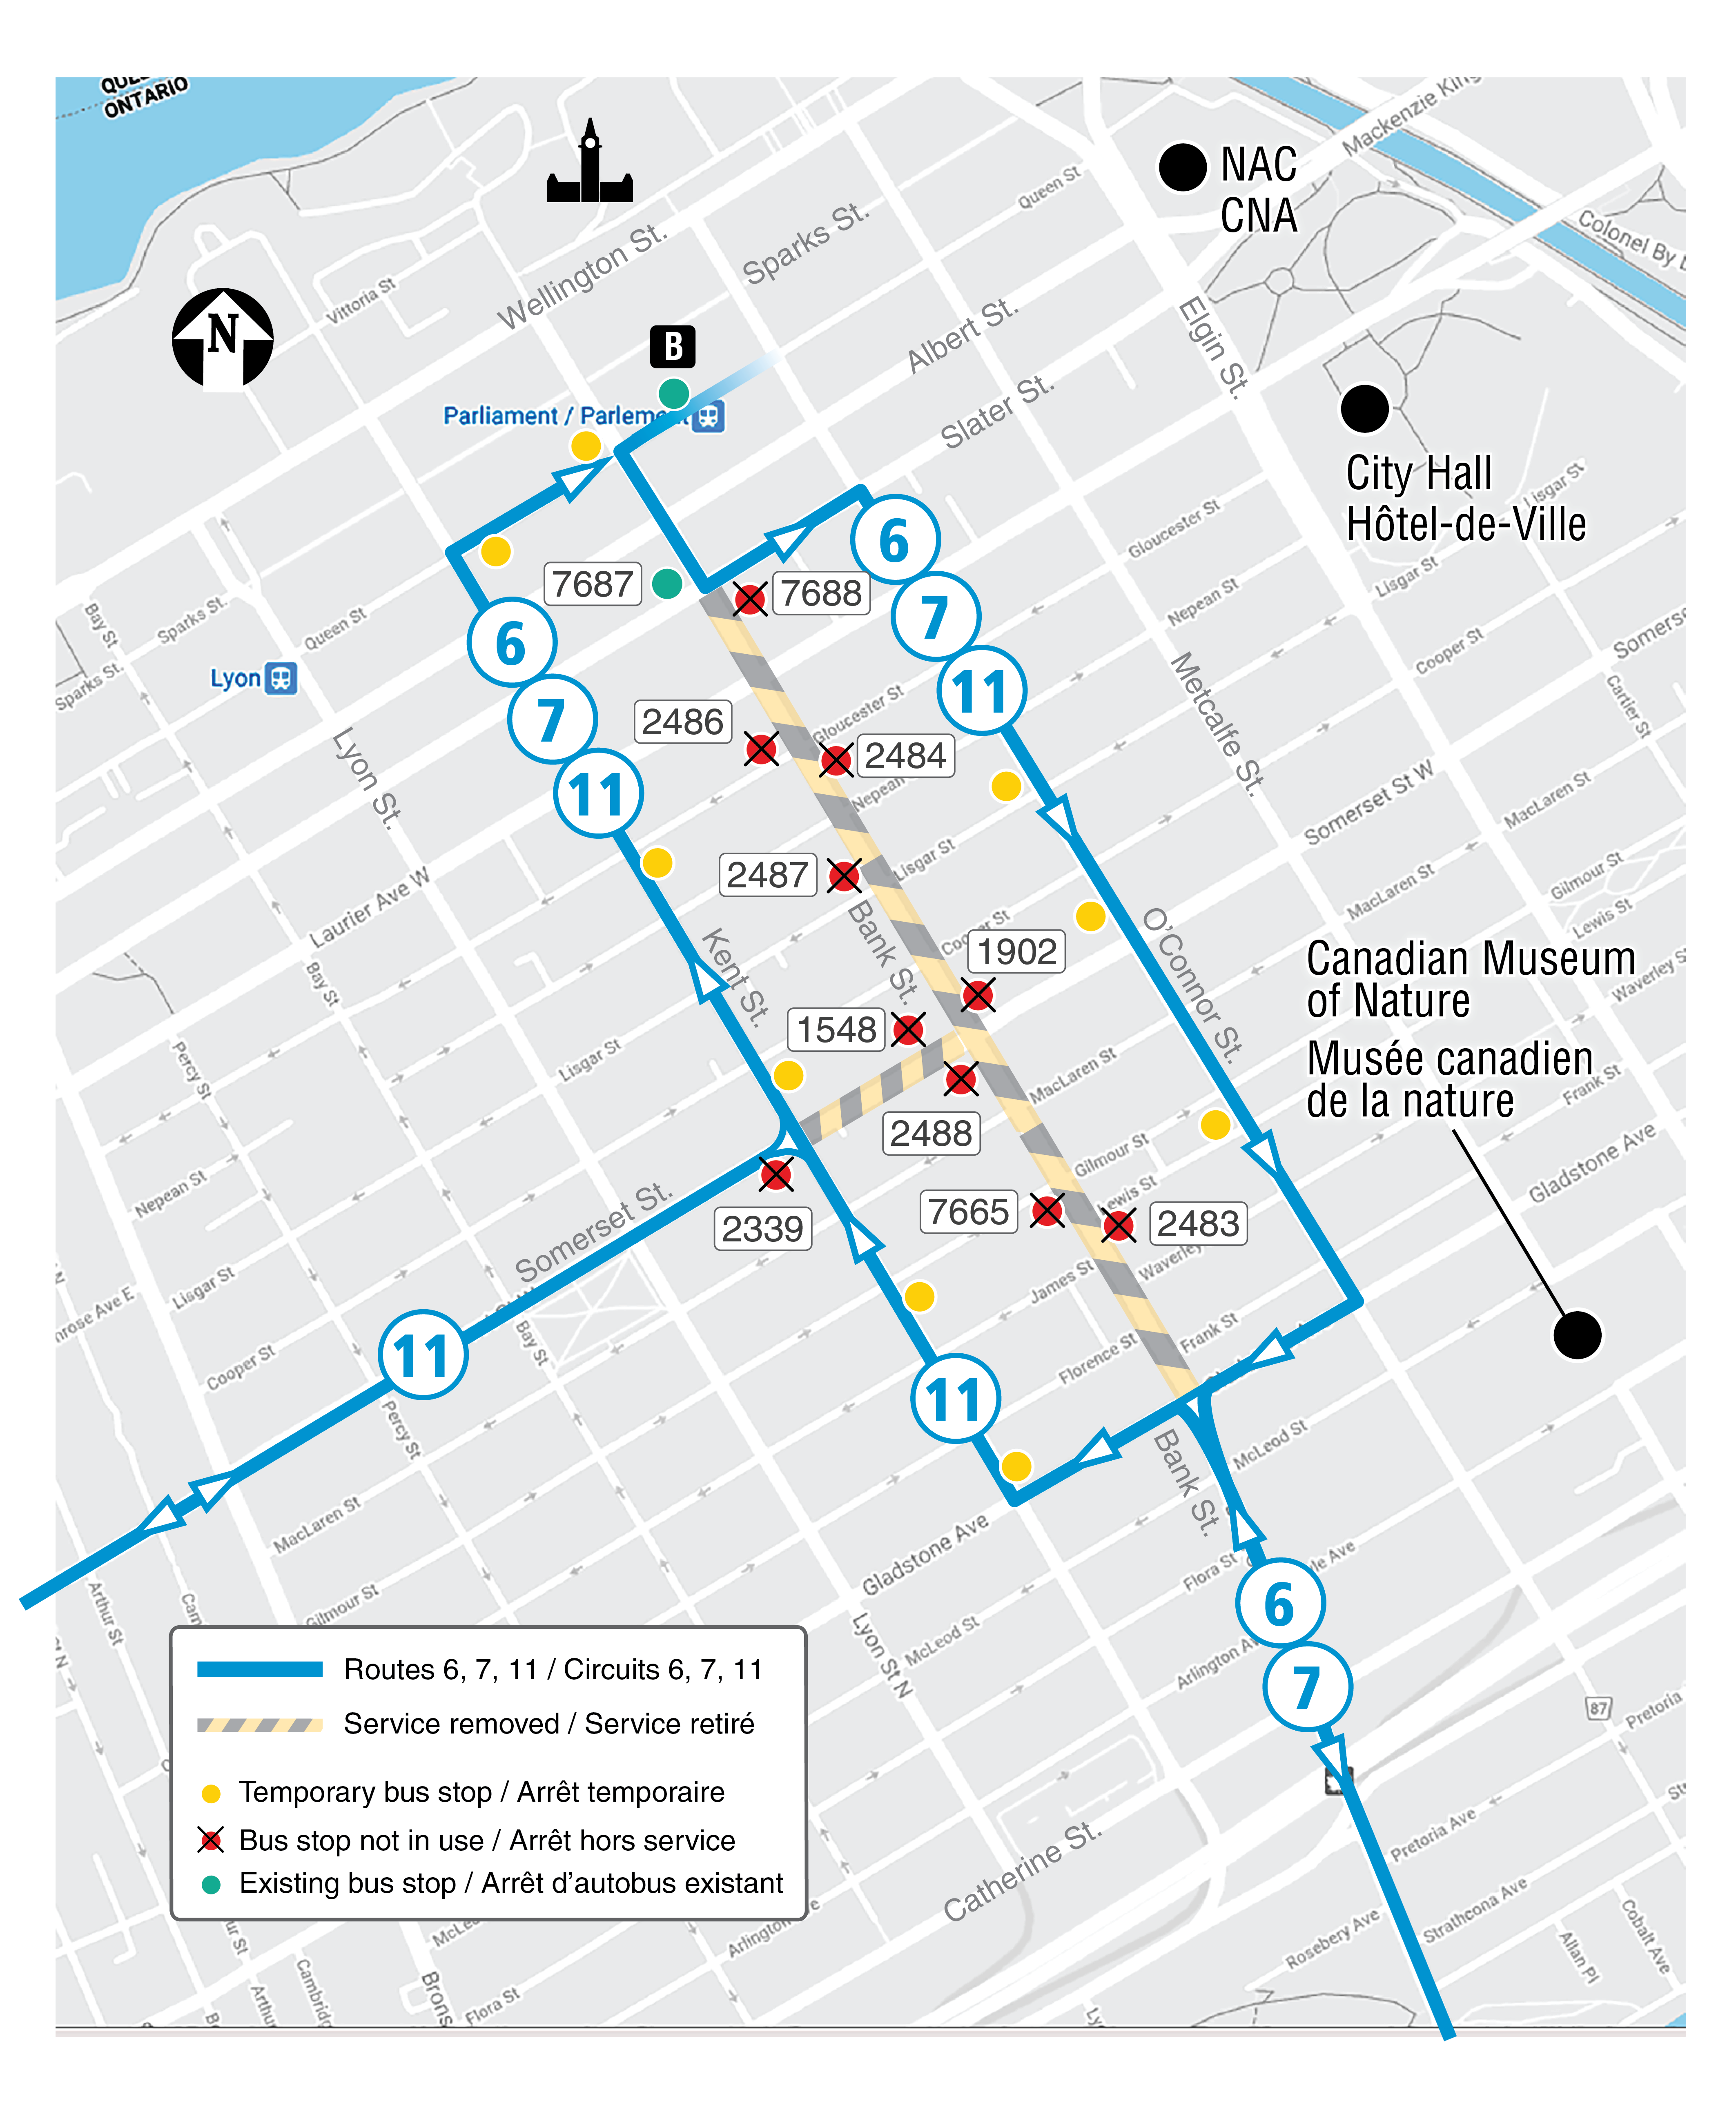 Map for Bank Street detour routing